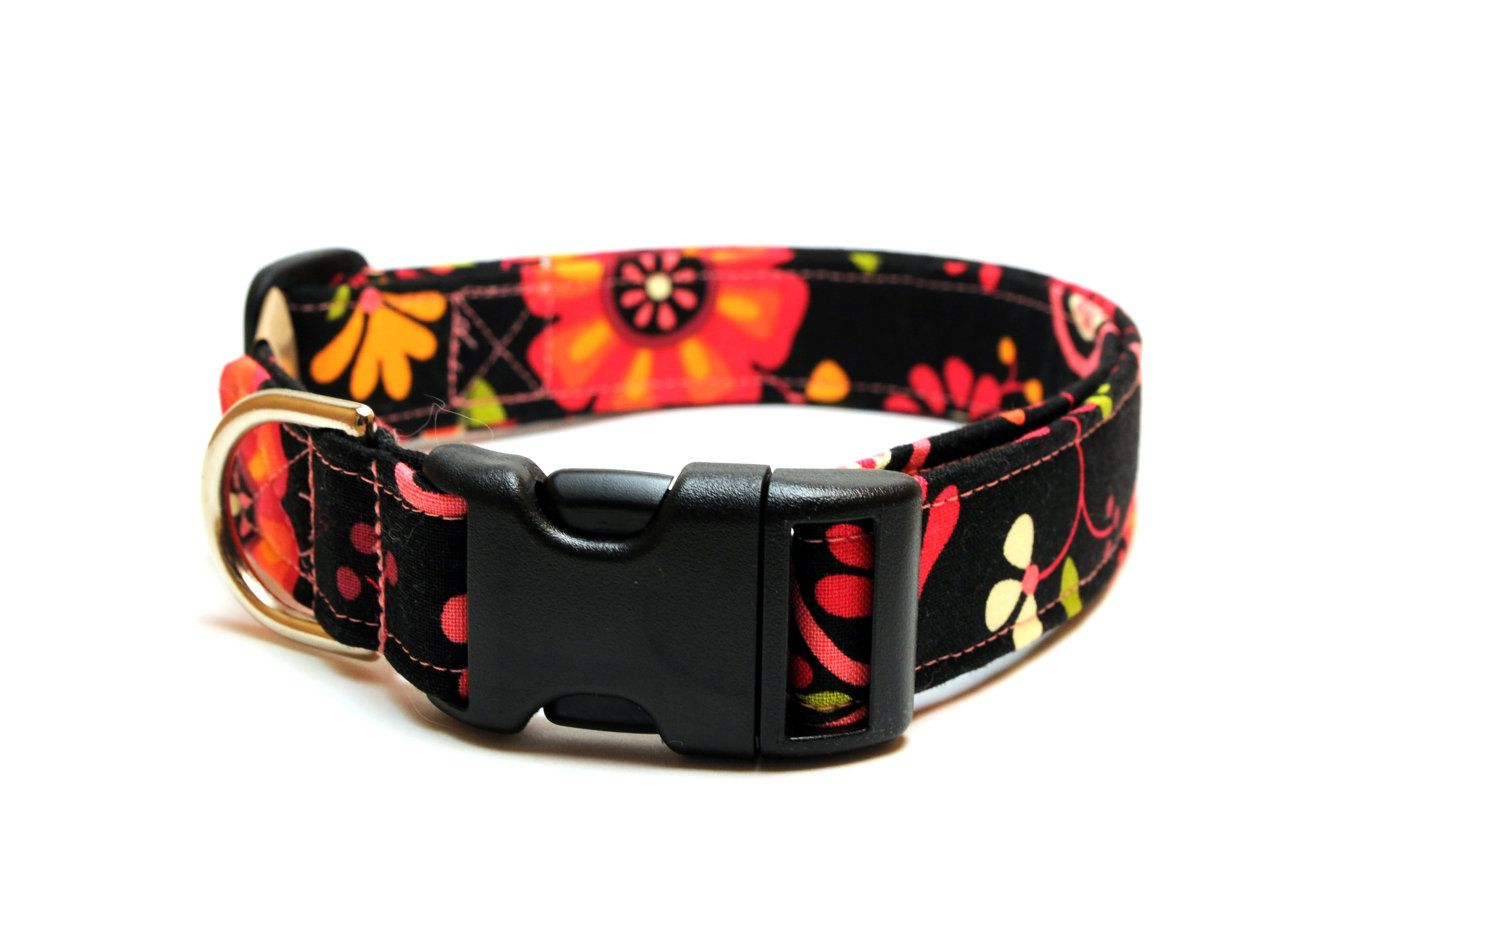 Adjustable Dog Collar -Black Fuschia Orange and Yellow Floral - Large